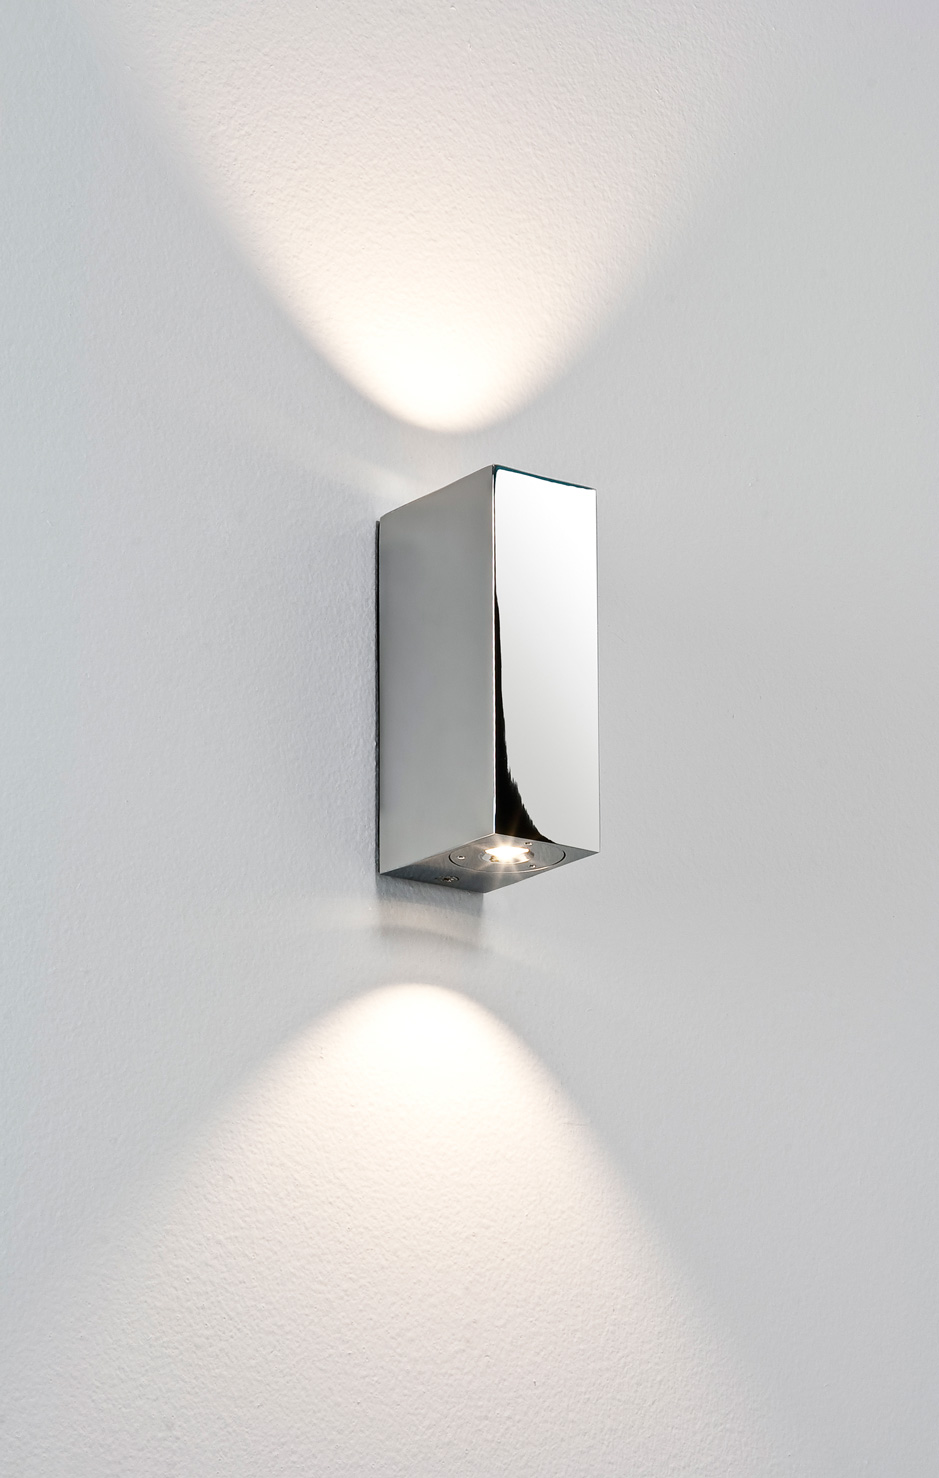 Astro bloc 0829 bathroom led up down wall light 2 x 1w for Eclairage mural exterieur